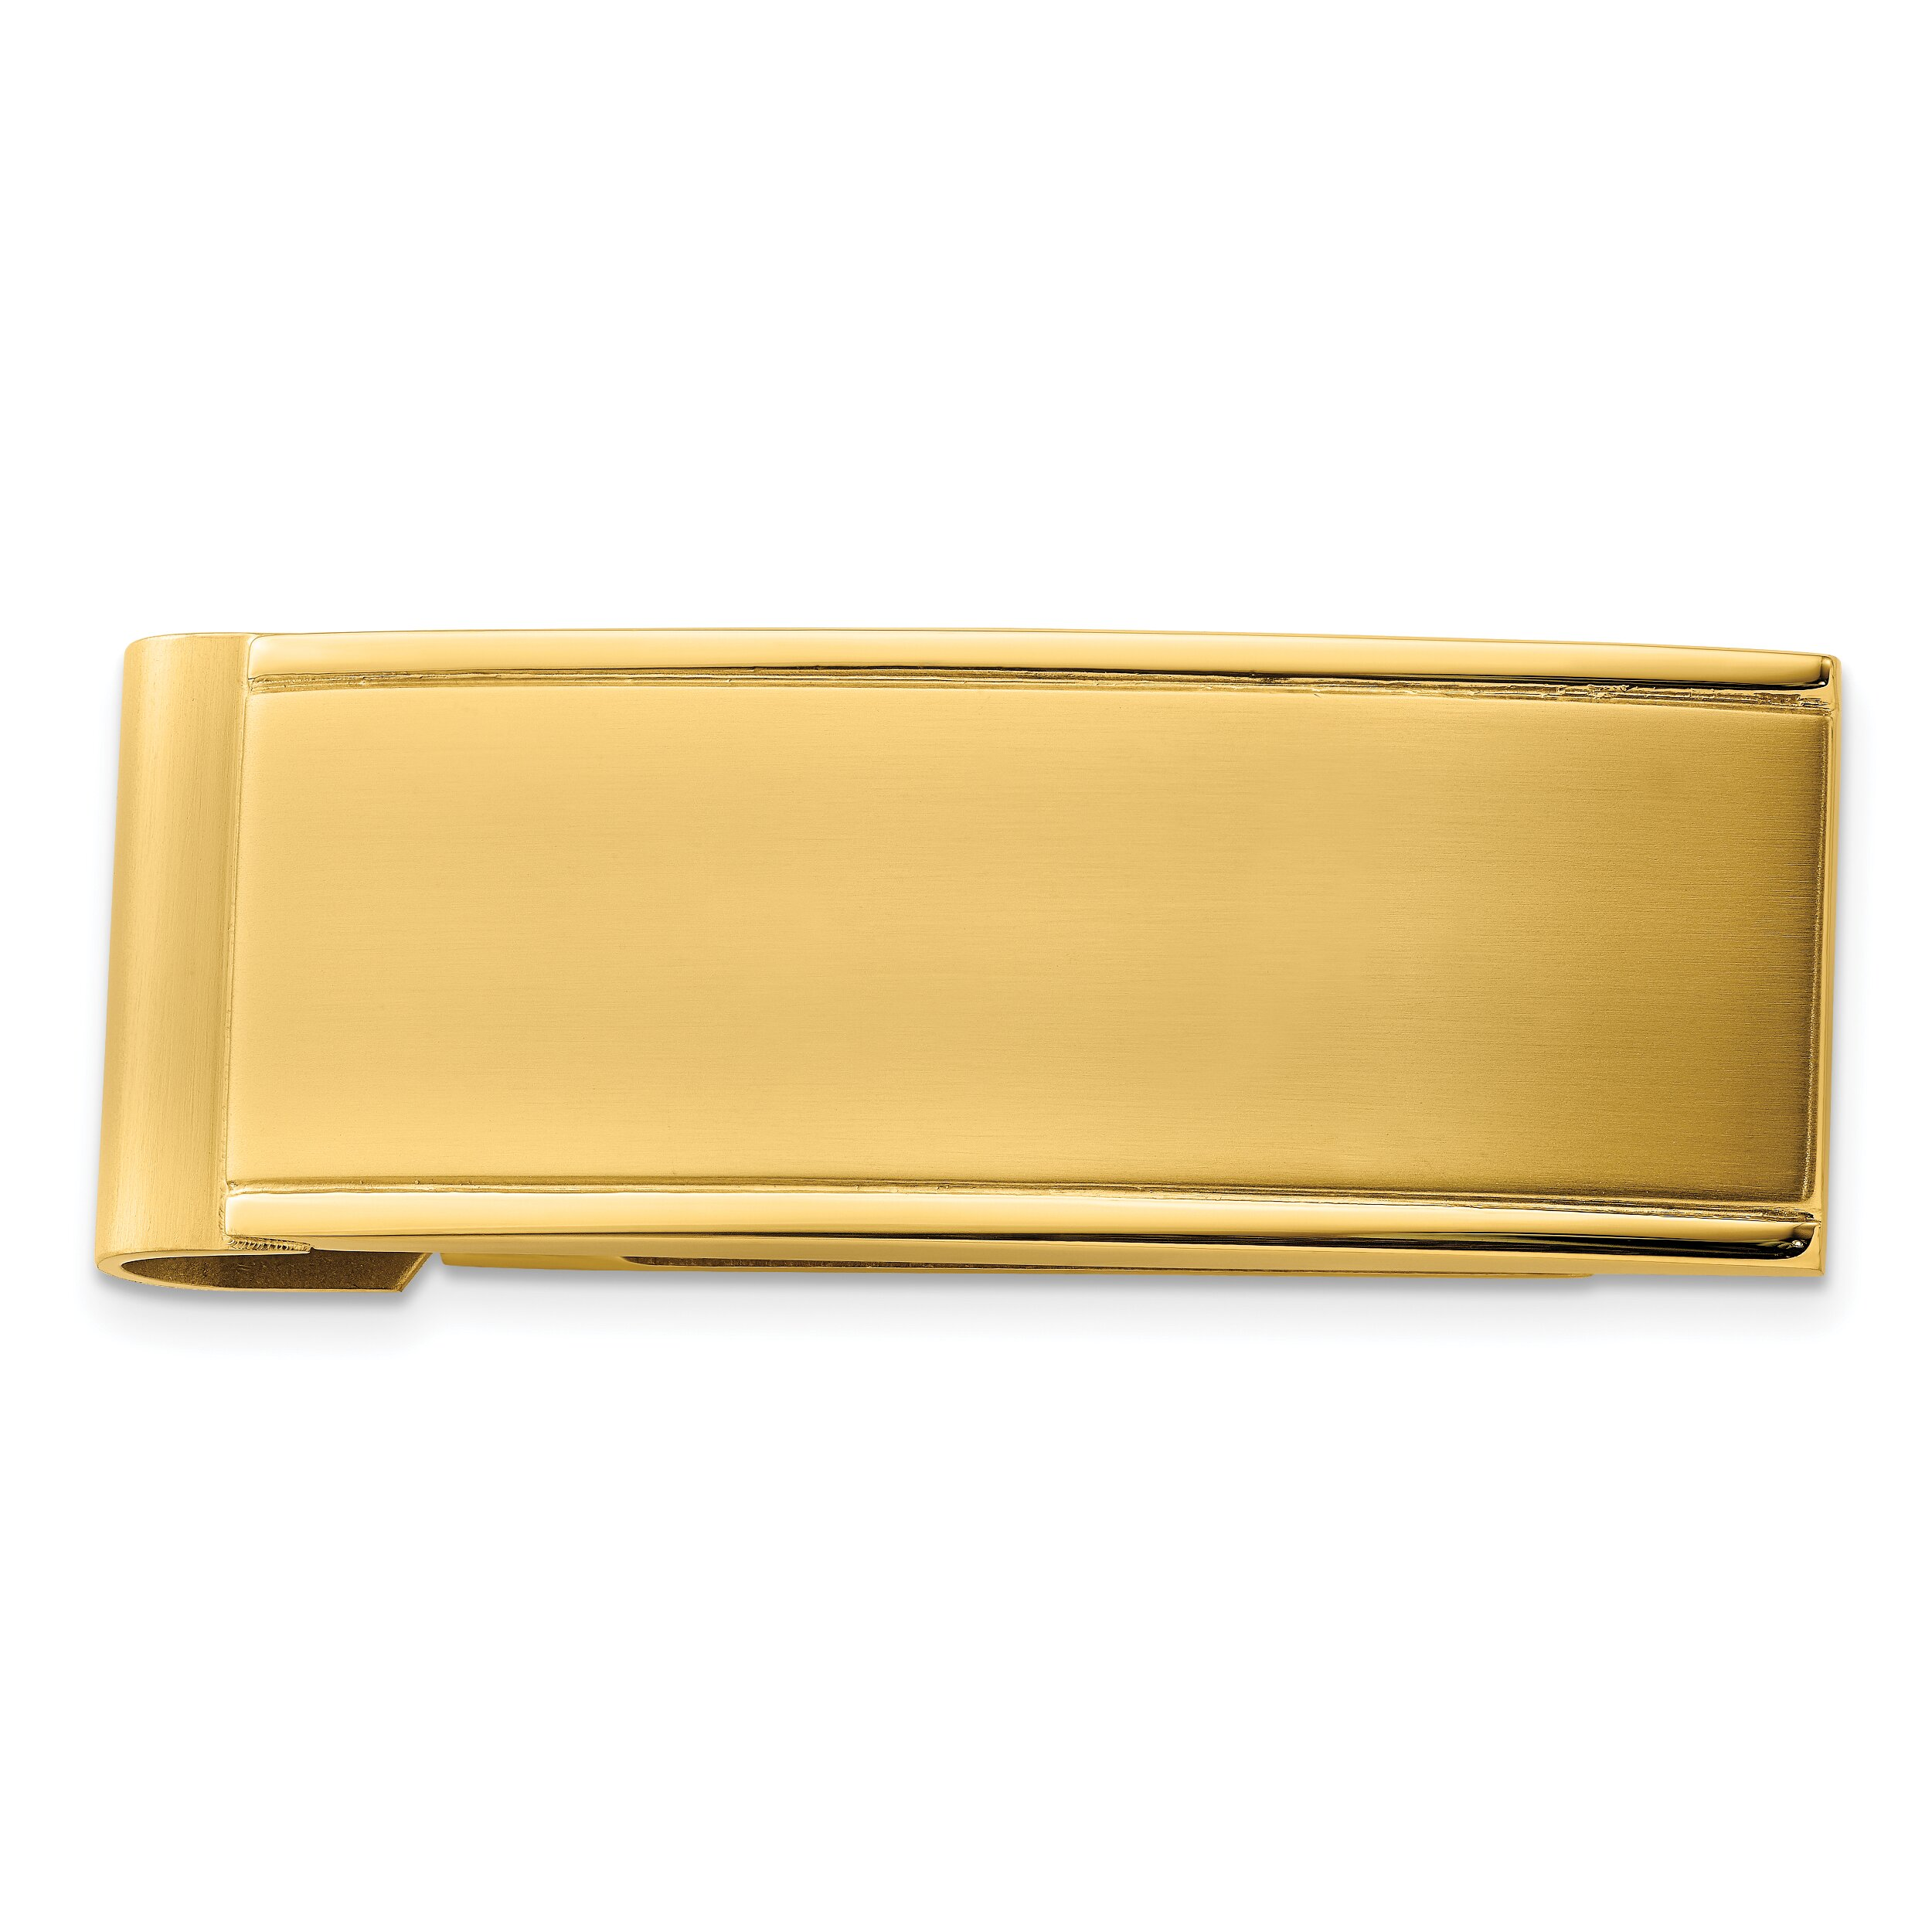 Findingking Stainless Steel Gold Plated Mens Money Clip Engravable at Sears.com